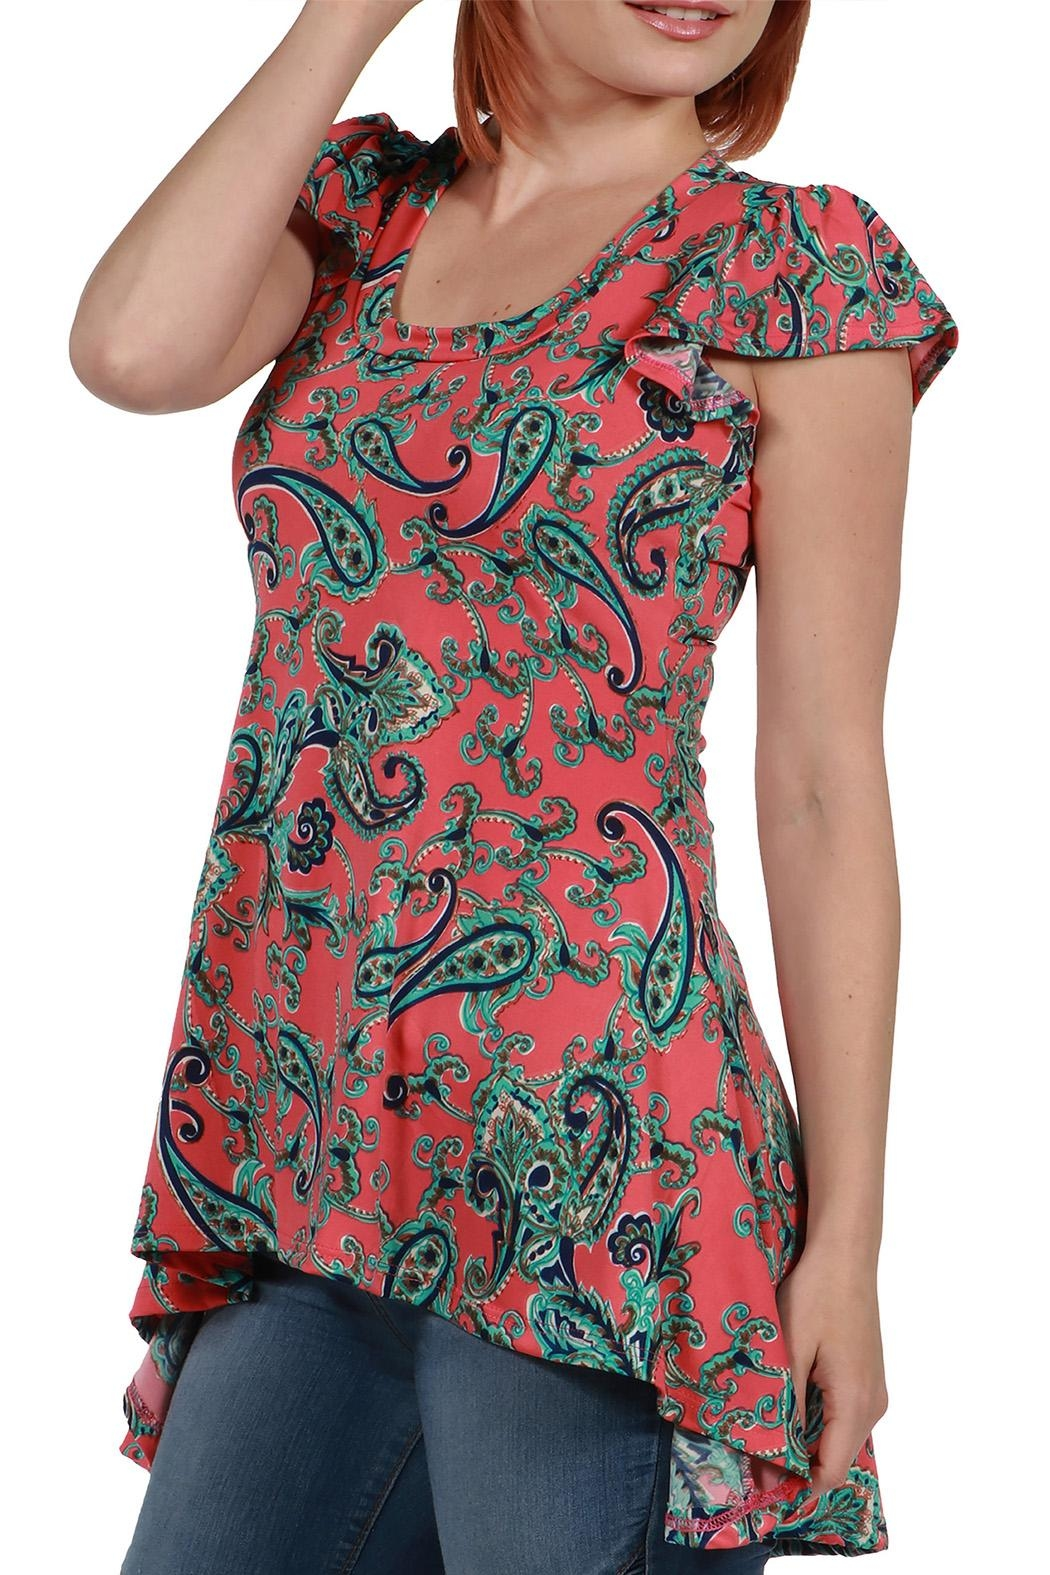 24/7 Comfort Apparel Hilo Pink Top - Front Full Image